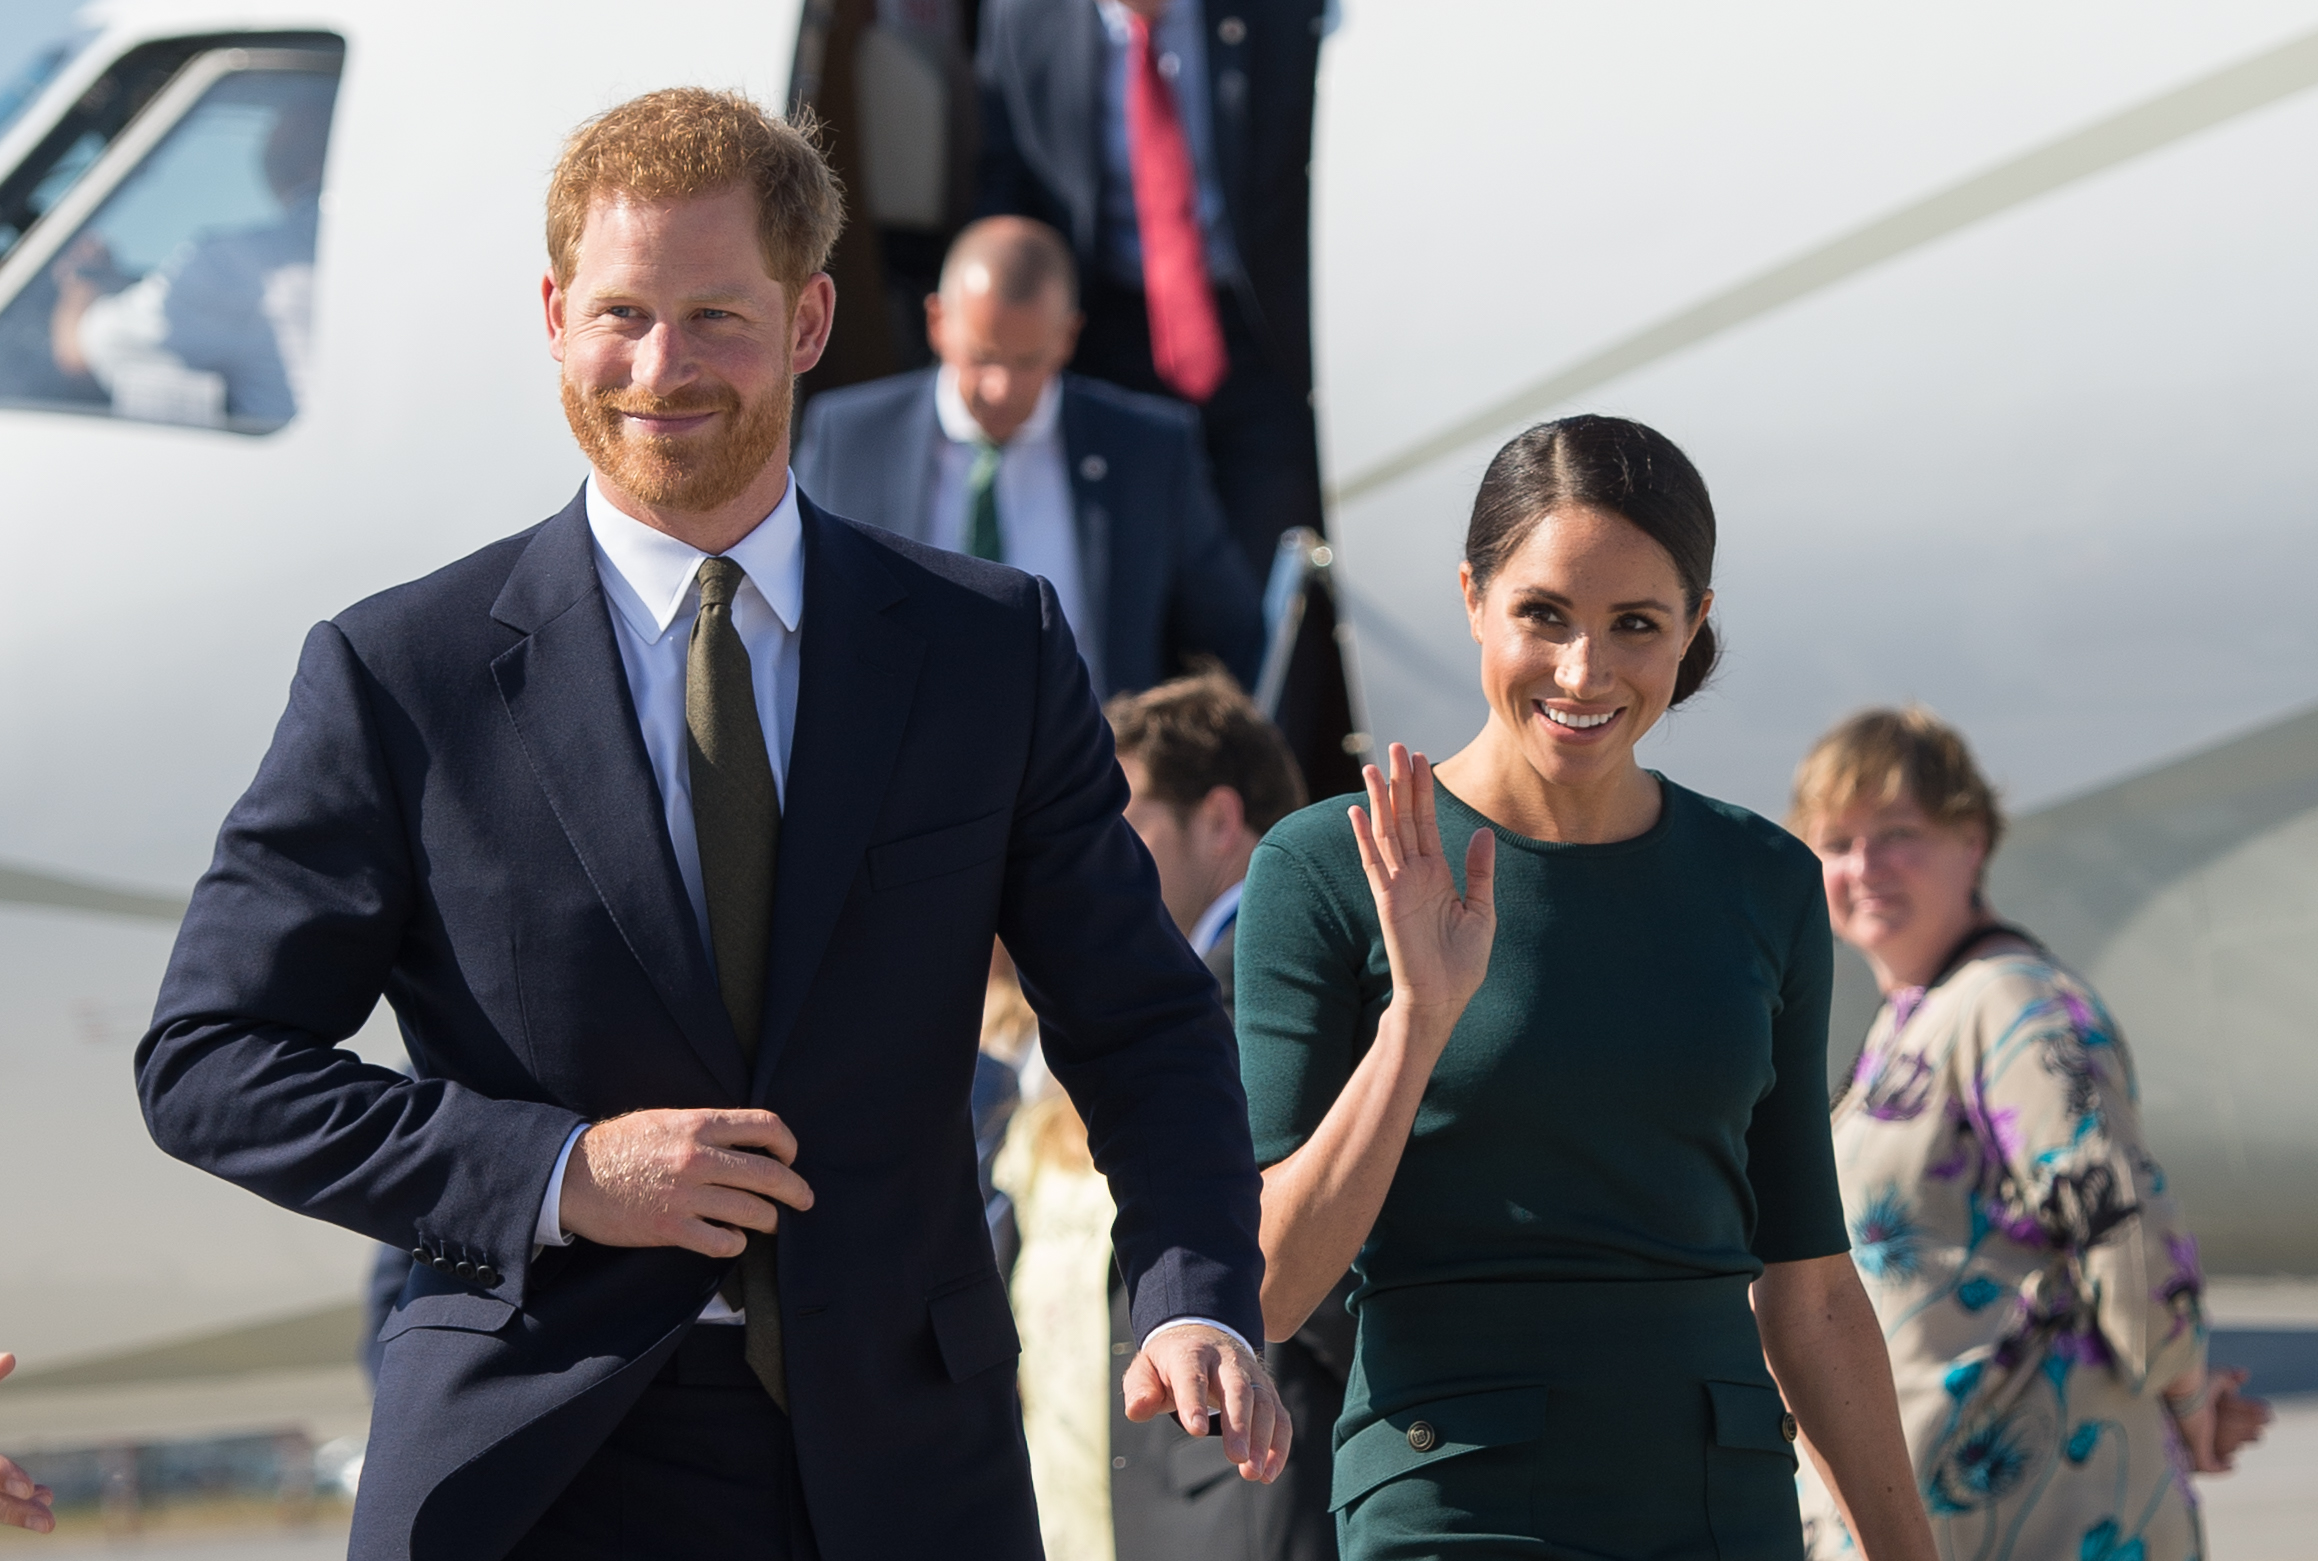 Meghan, Duchess of Sussex and Prince Harry, Duke of Sussex arrive at the airport for their visit to Ireland on July 10, 2018 in Dublin. (Getty Images)